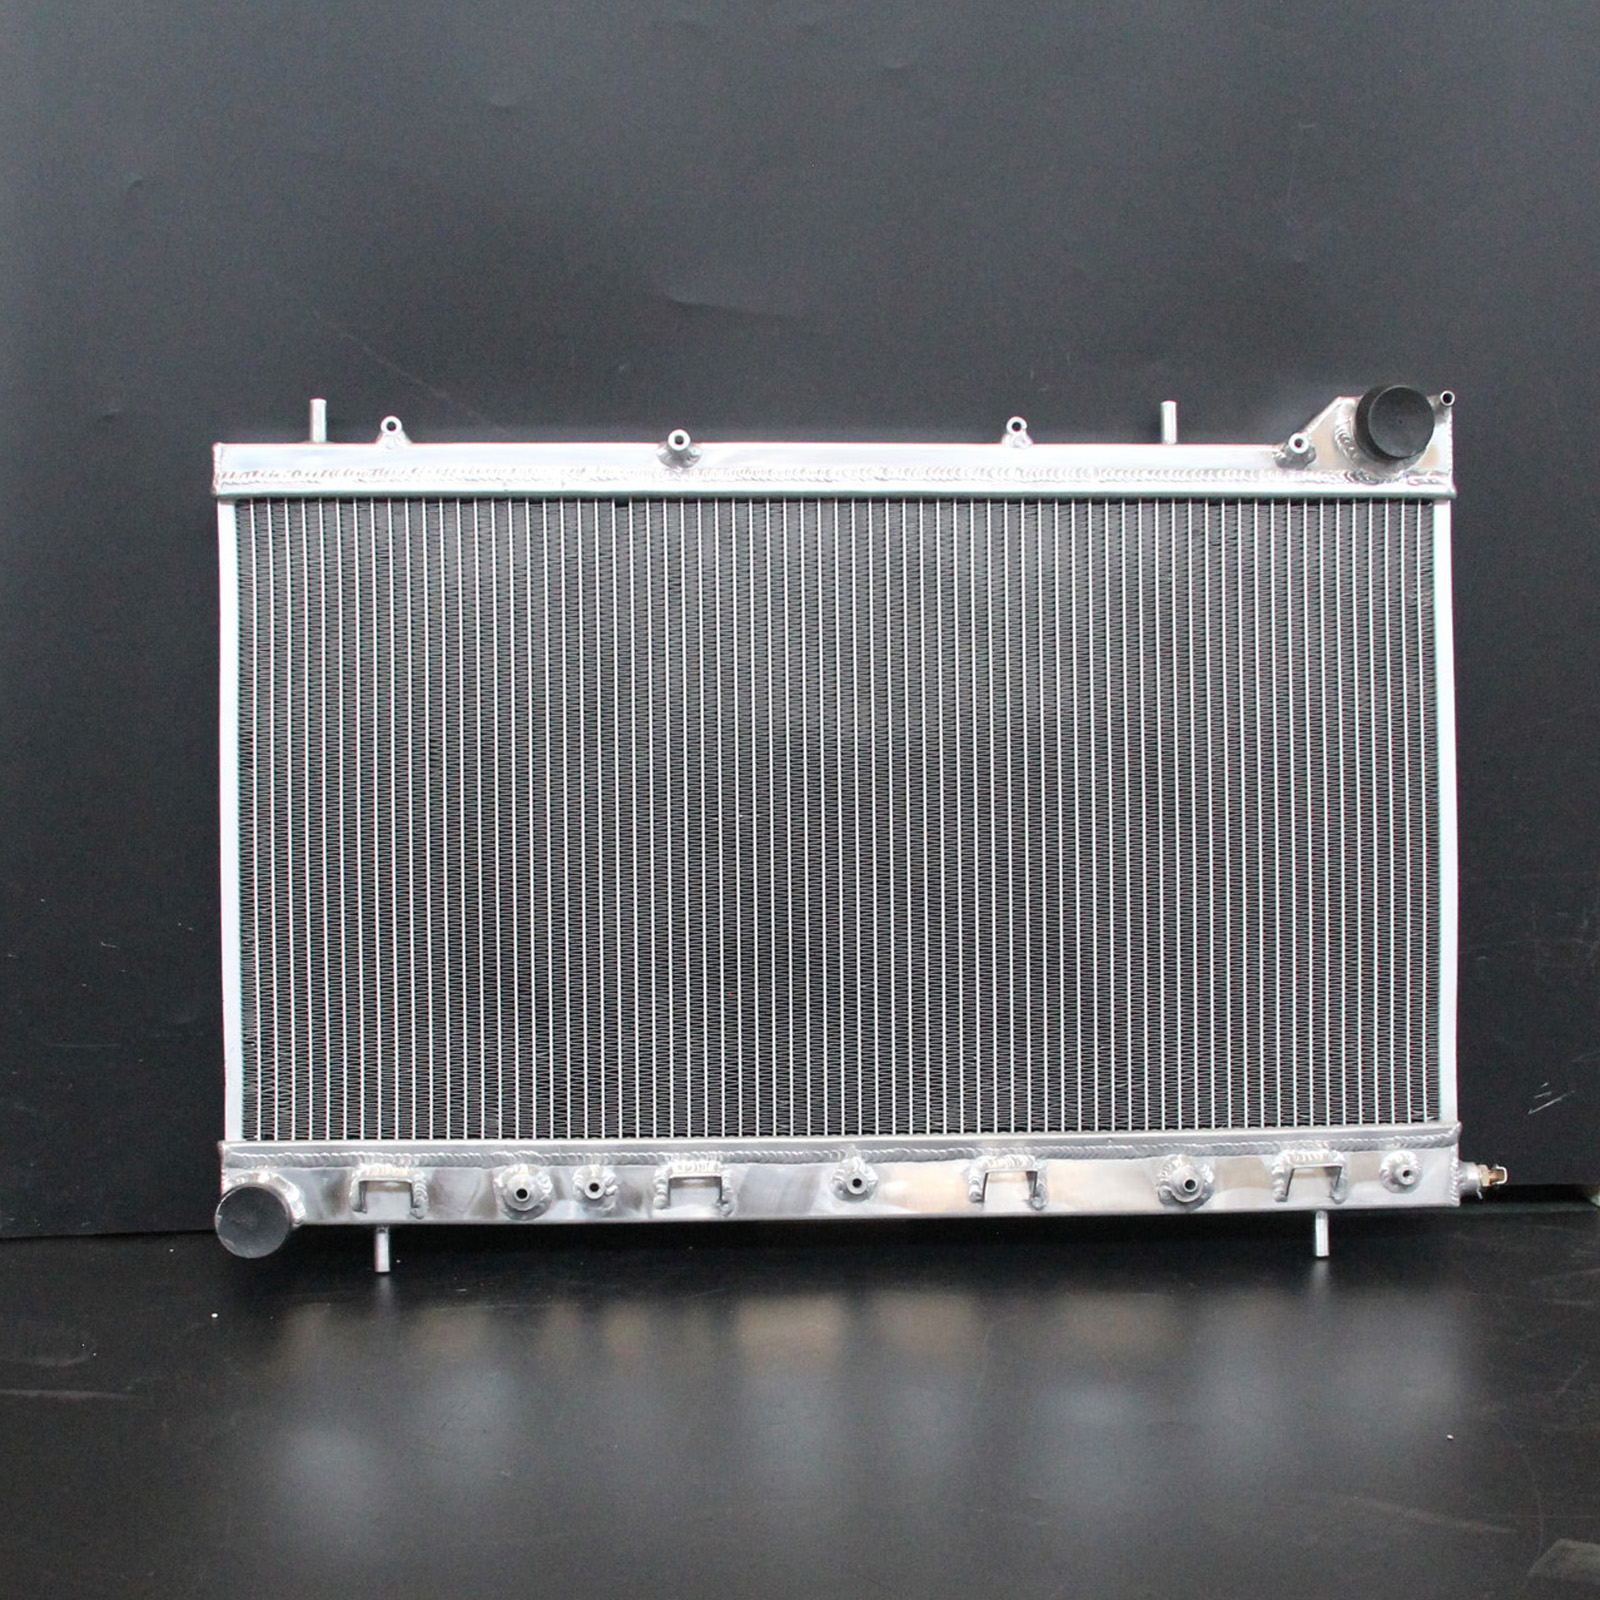 Radiator For Subaru Forester 2003 2004 2005 2006 2007 2008 2.5L H4 Wagon 4-Door